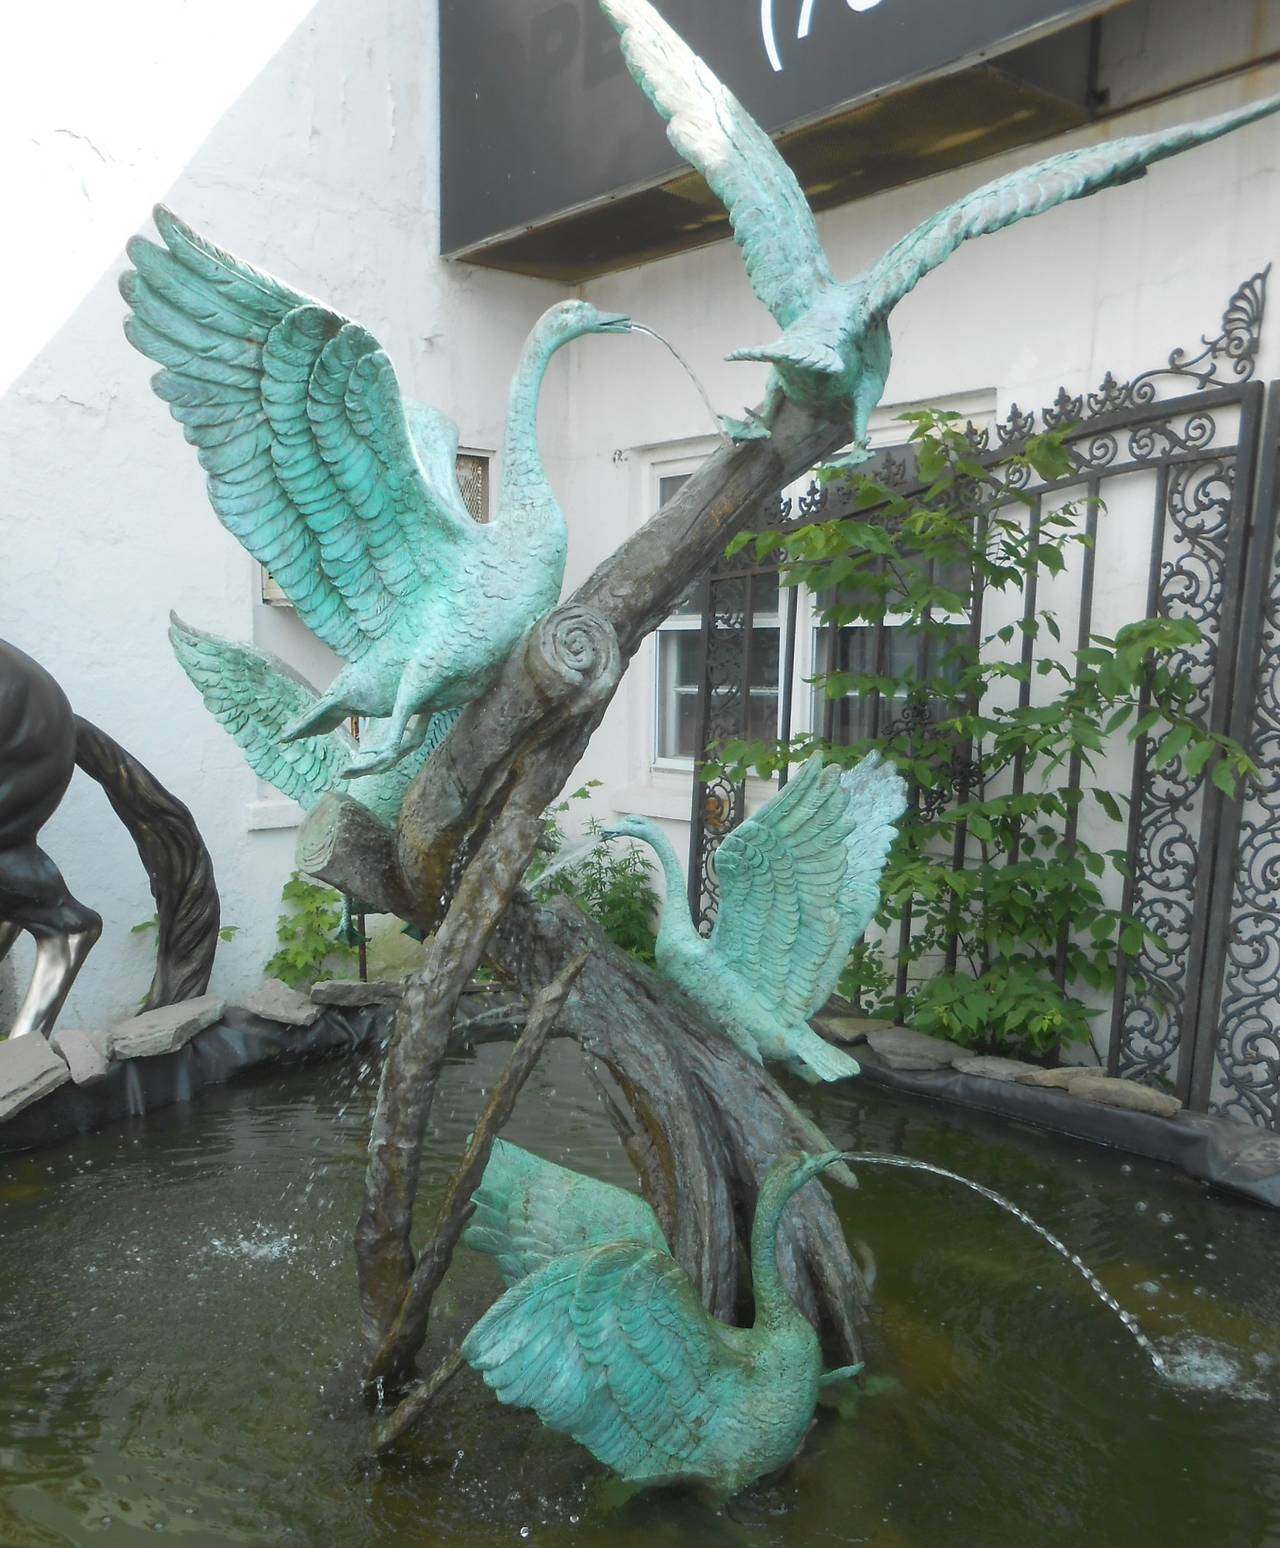 This lovely fountain is crafted using treated bronze to accentuate the greenish patina of the birds and contrast to the dark tree base.  Perfect piece for garden or pond. Please confirm item location (NY or NJ) with dealer.